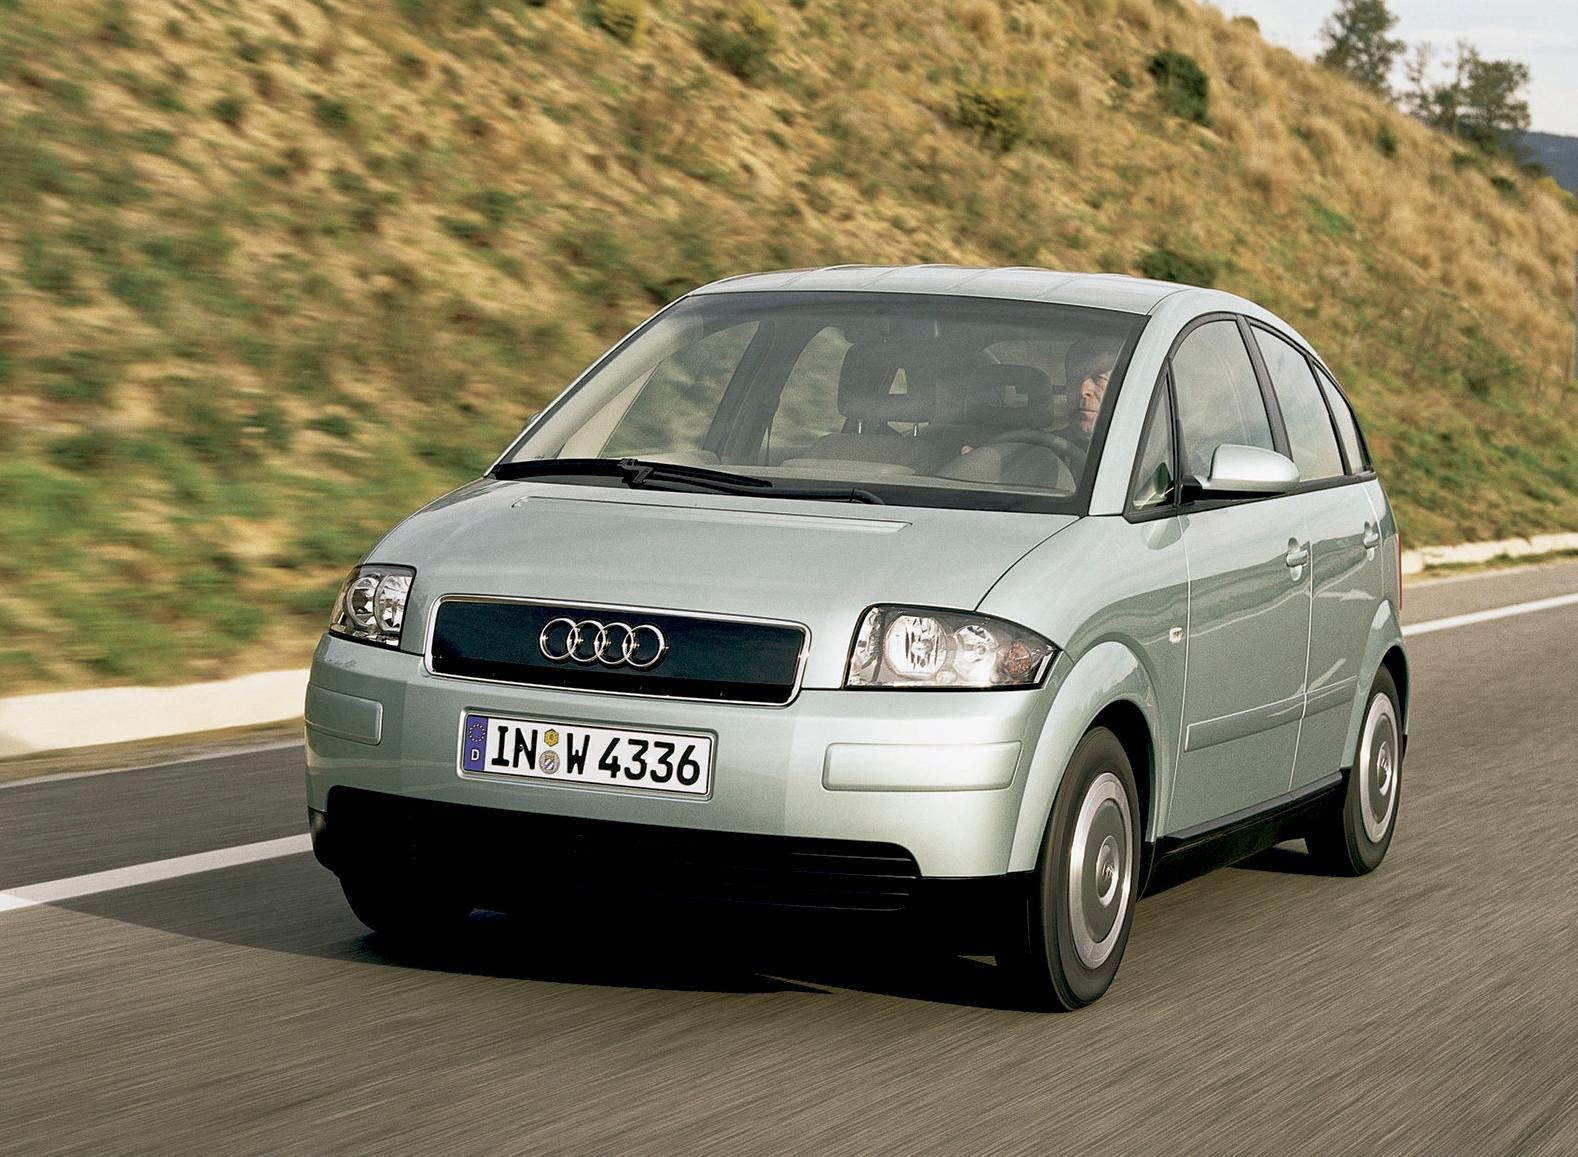 Audi A2 2001 Desktop Wallpaper